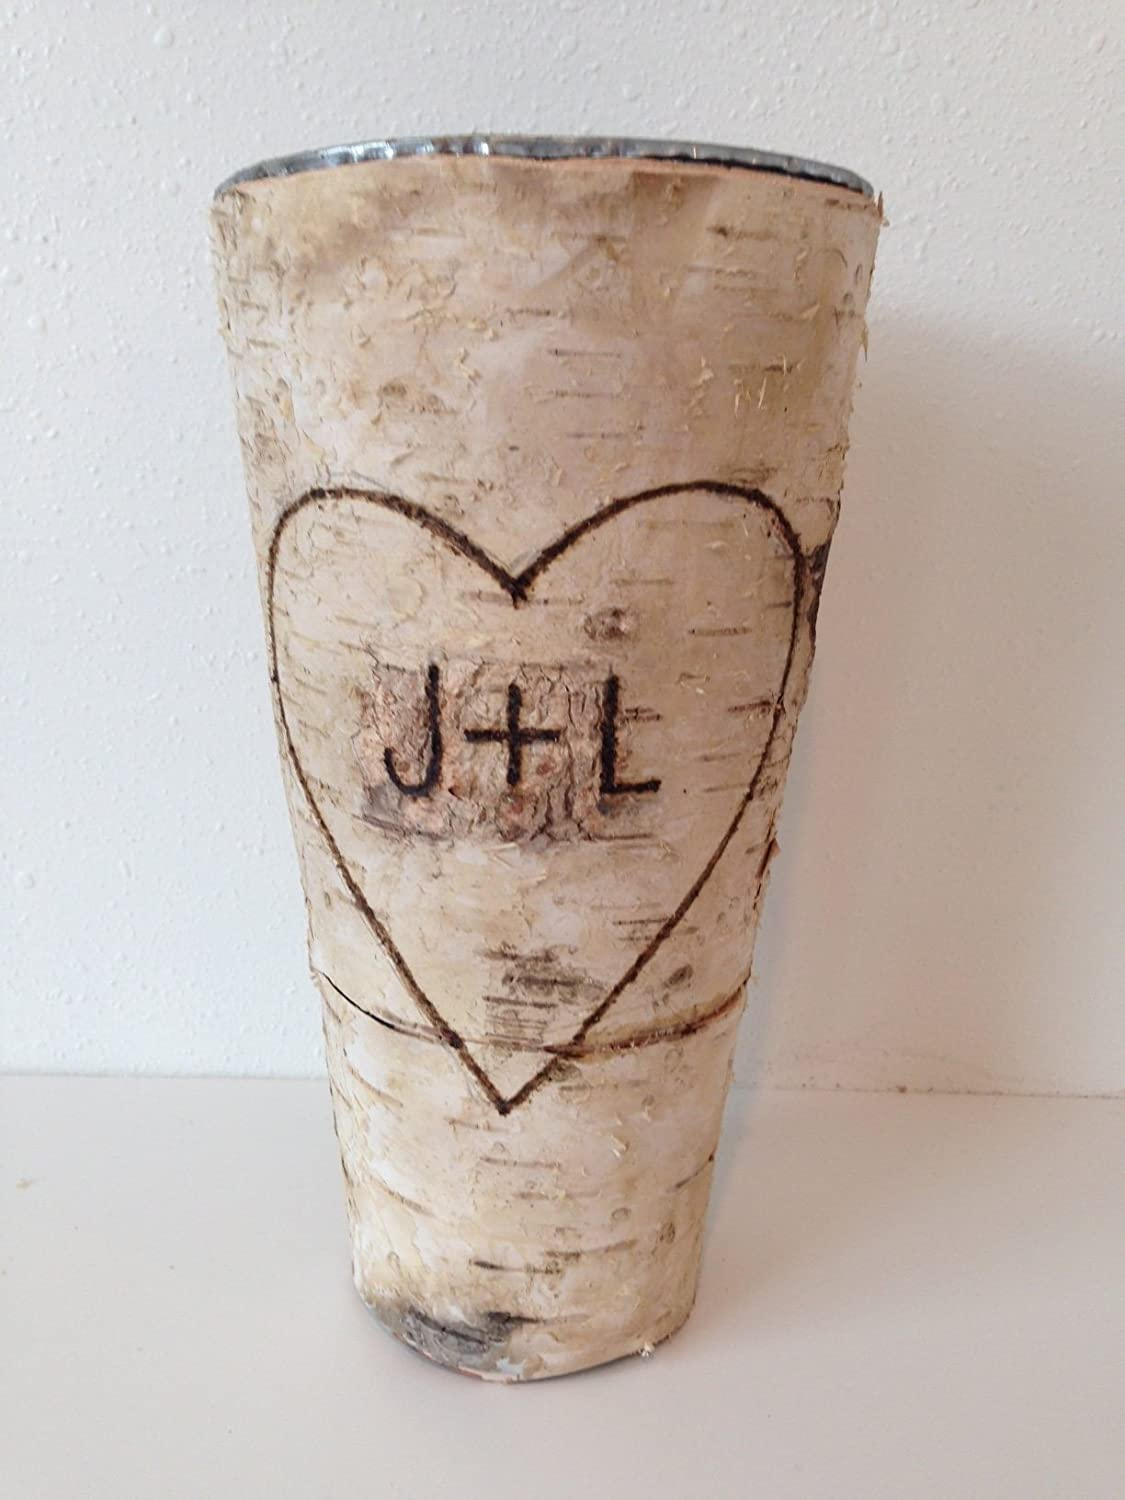 Personalized 9 Tall Custom Birch Bark Rustic Vase Wedding Centerpiece or Gift